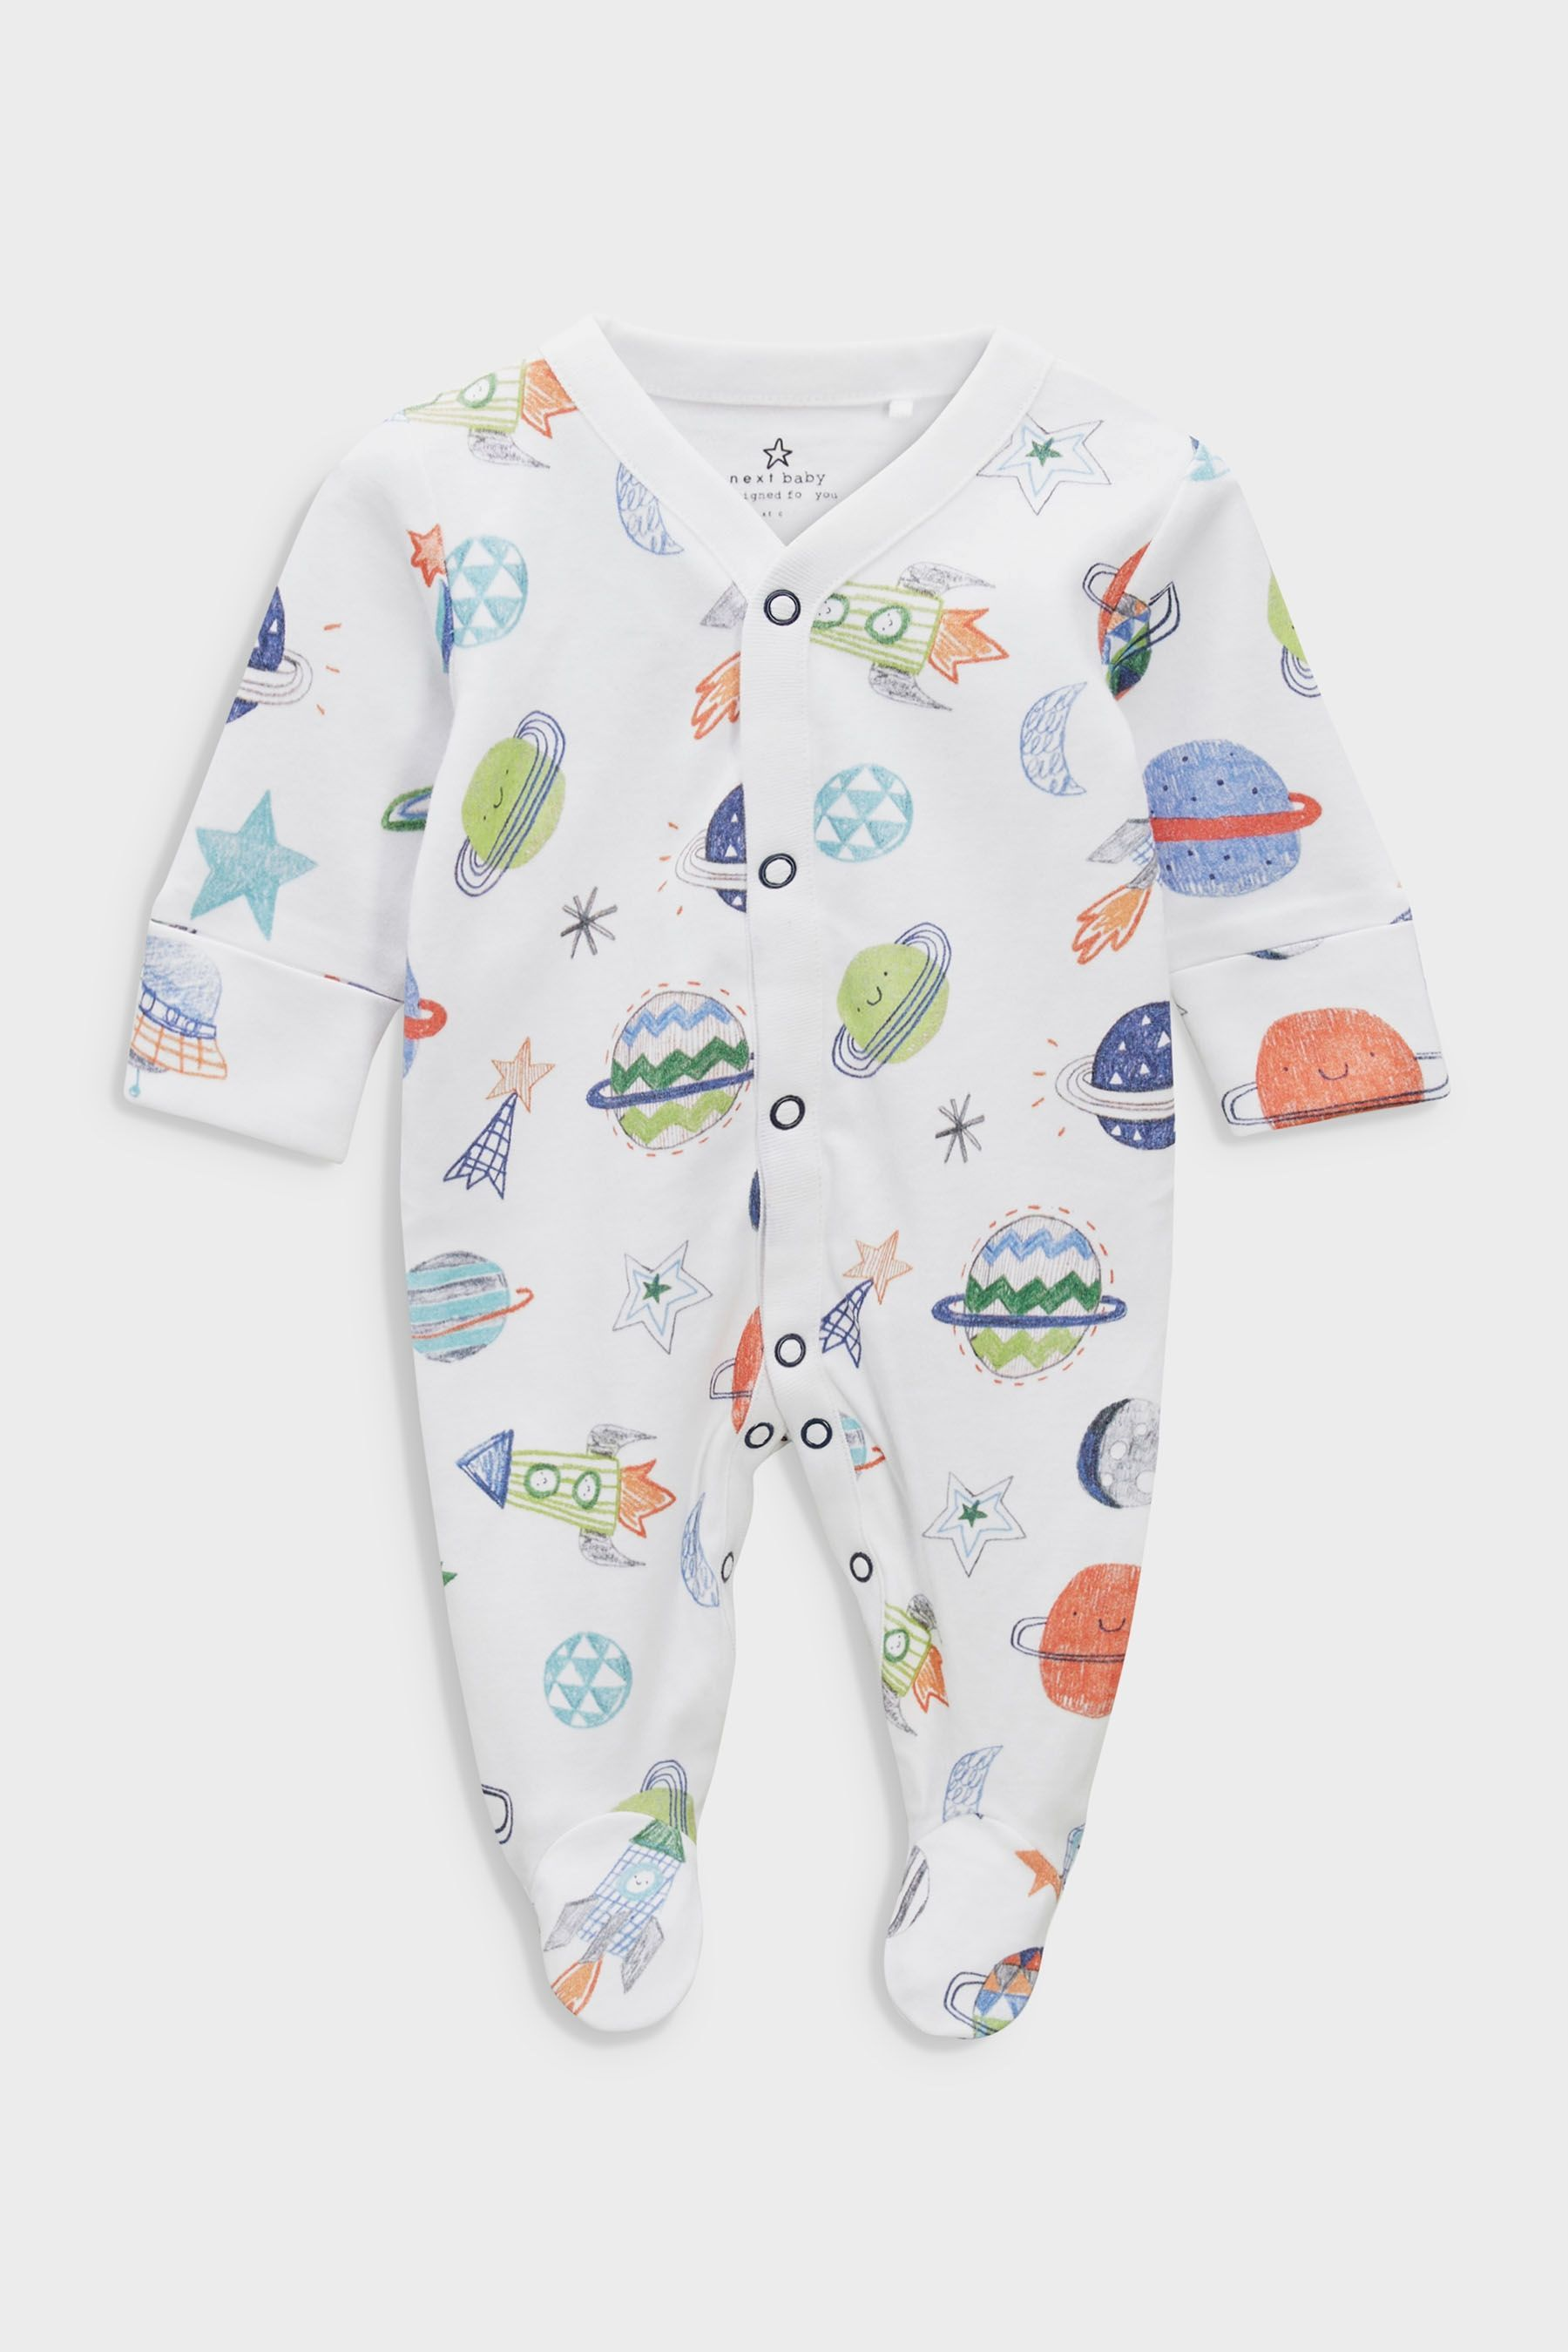 Sleepsuit Boy//Girl//Unisex no 1 grand daughter BabyGro